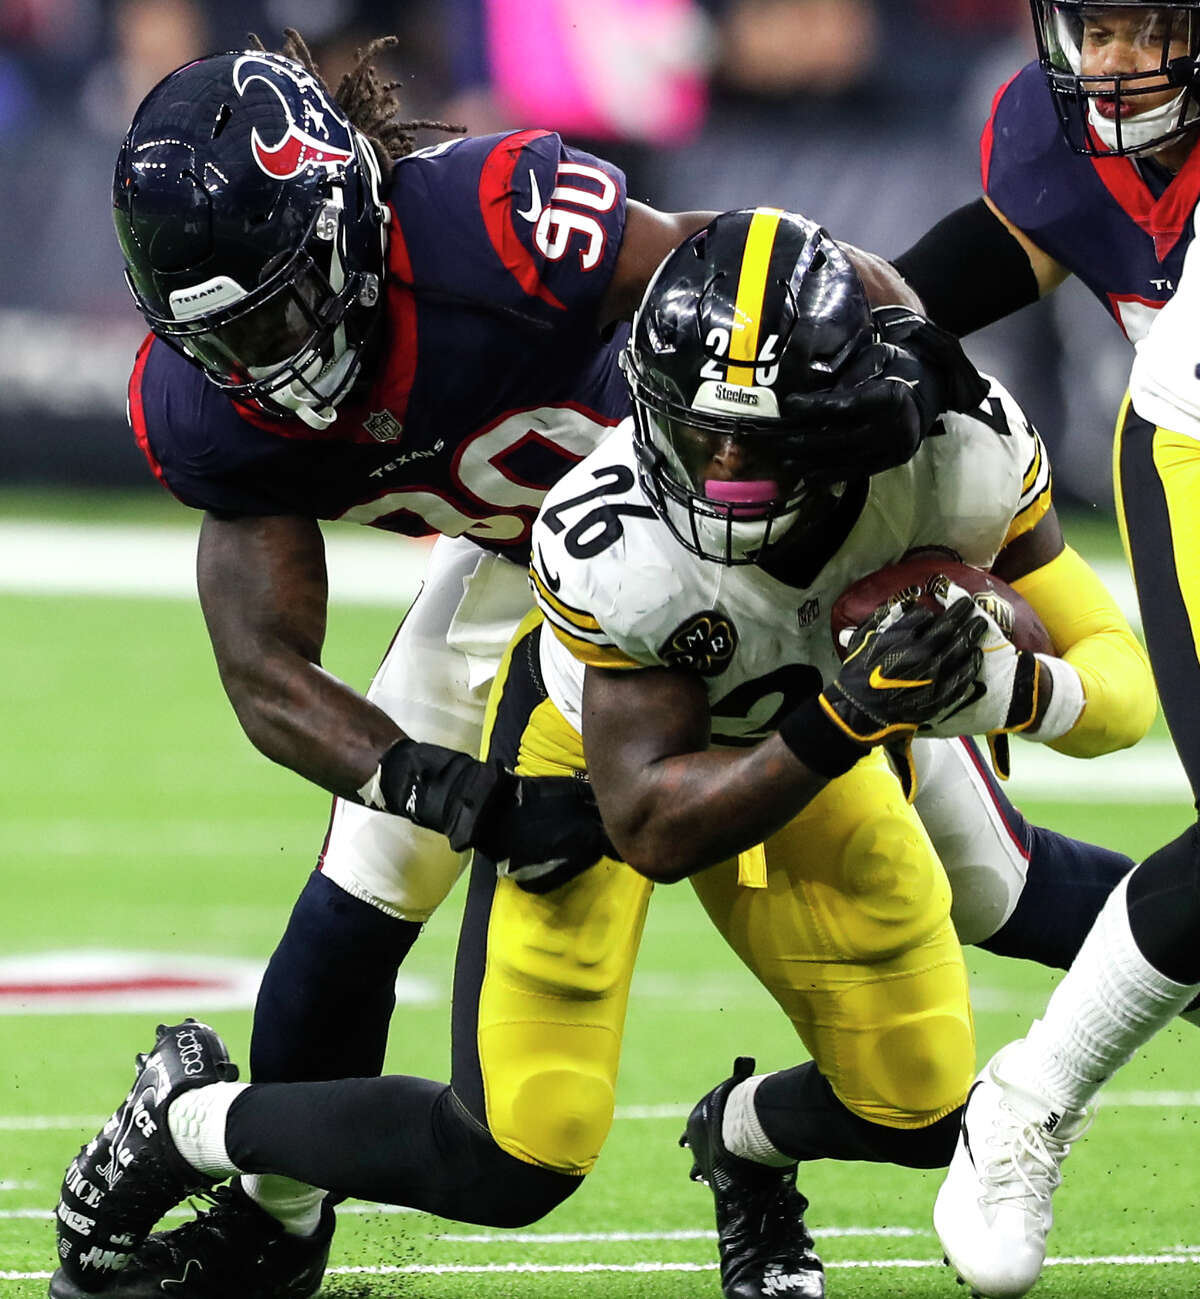 JOHN MCCLAIN'S TEXANS YEAR-END AWARDS Outstanding defensive playerJadeveon Clowney, outside linebackerIn his fourth season, he played every game for the first time and led the defense with 9 ½ sacks, 21 hits on the quarterback and 21 tackles for loss while moving from linebacker to end.